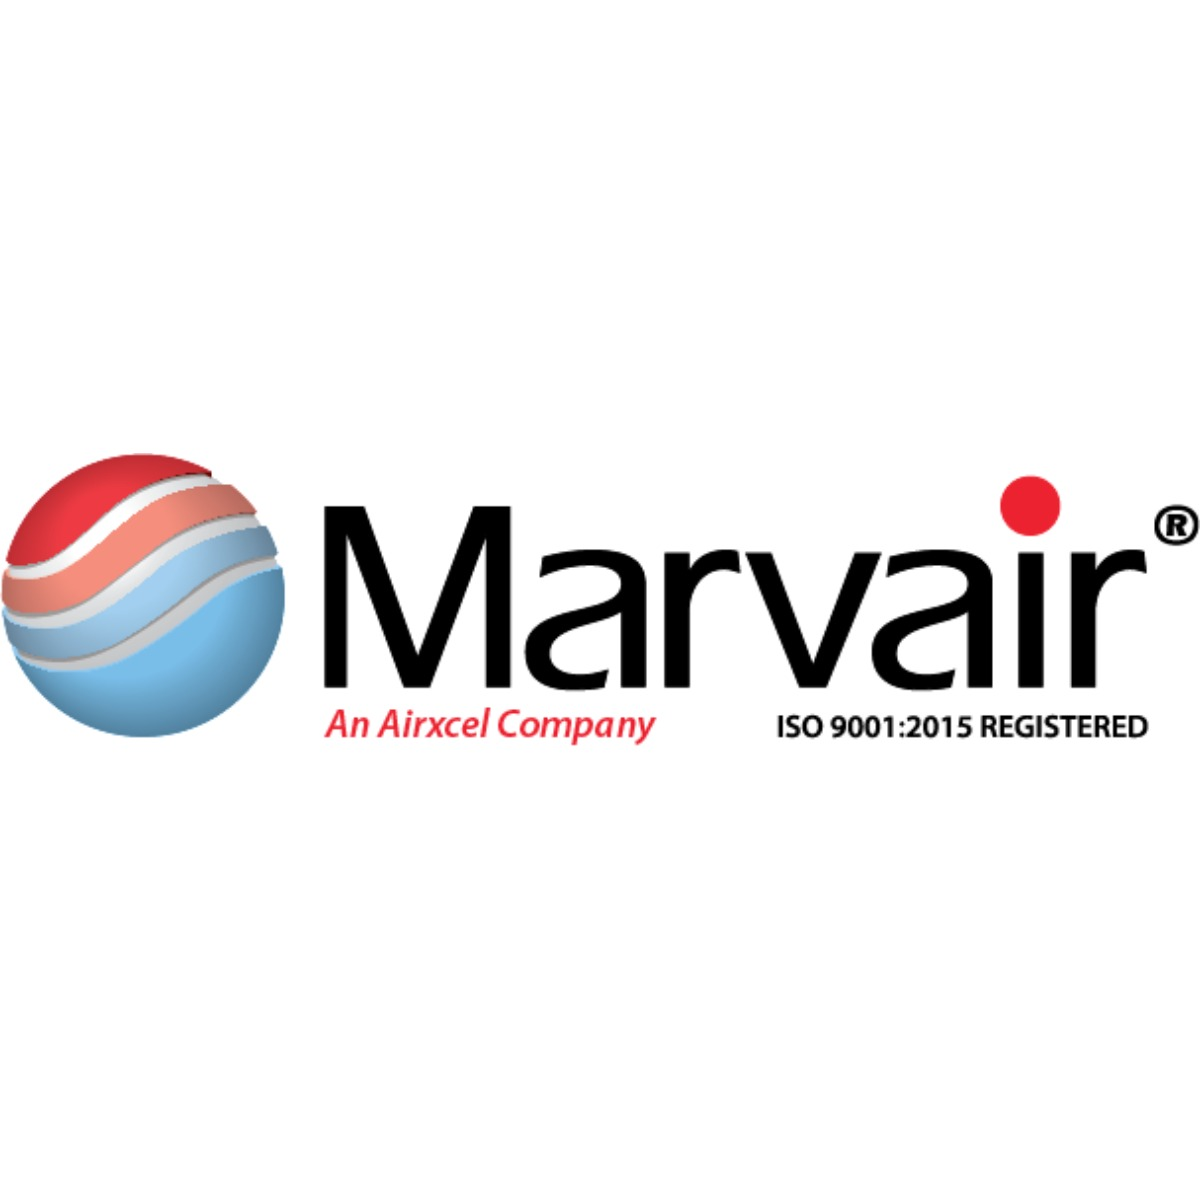 Marvair and ICE Divisions of Airxcel, Inc.